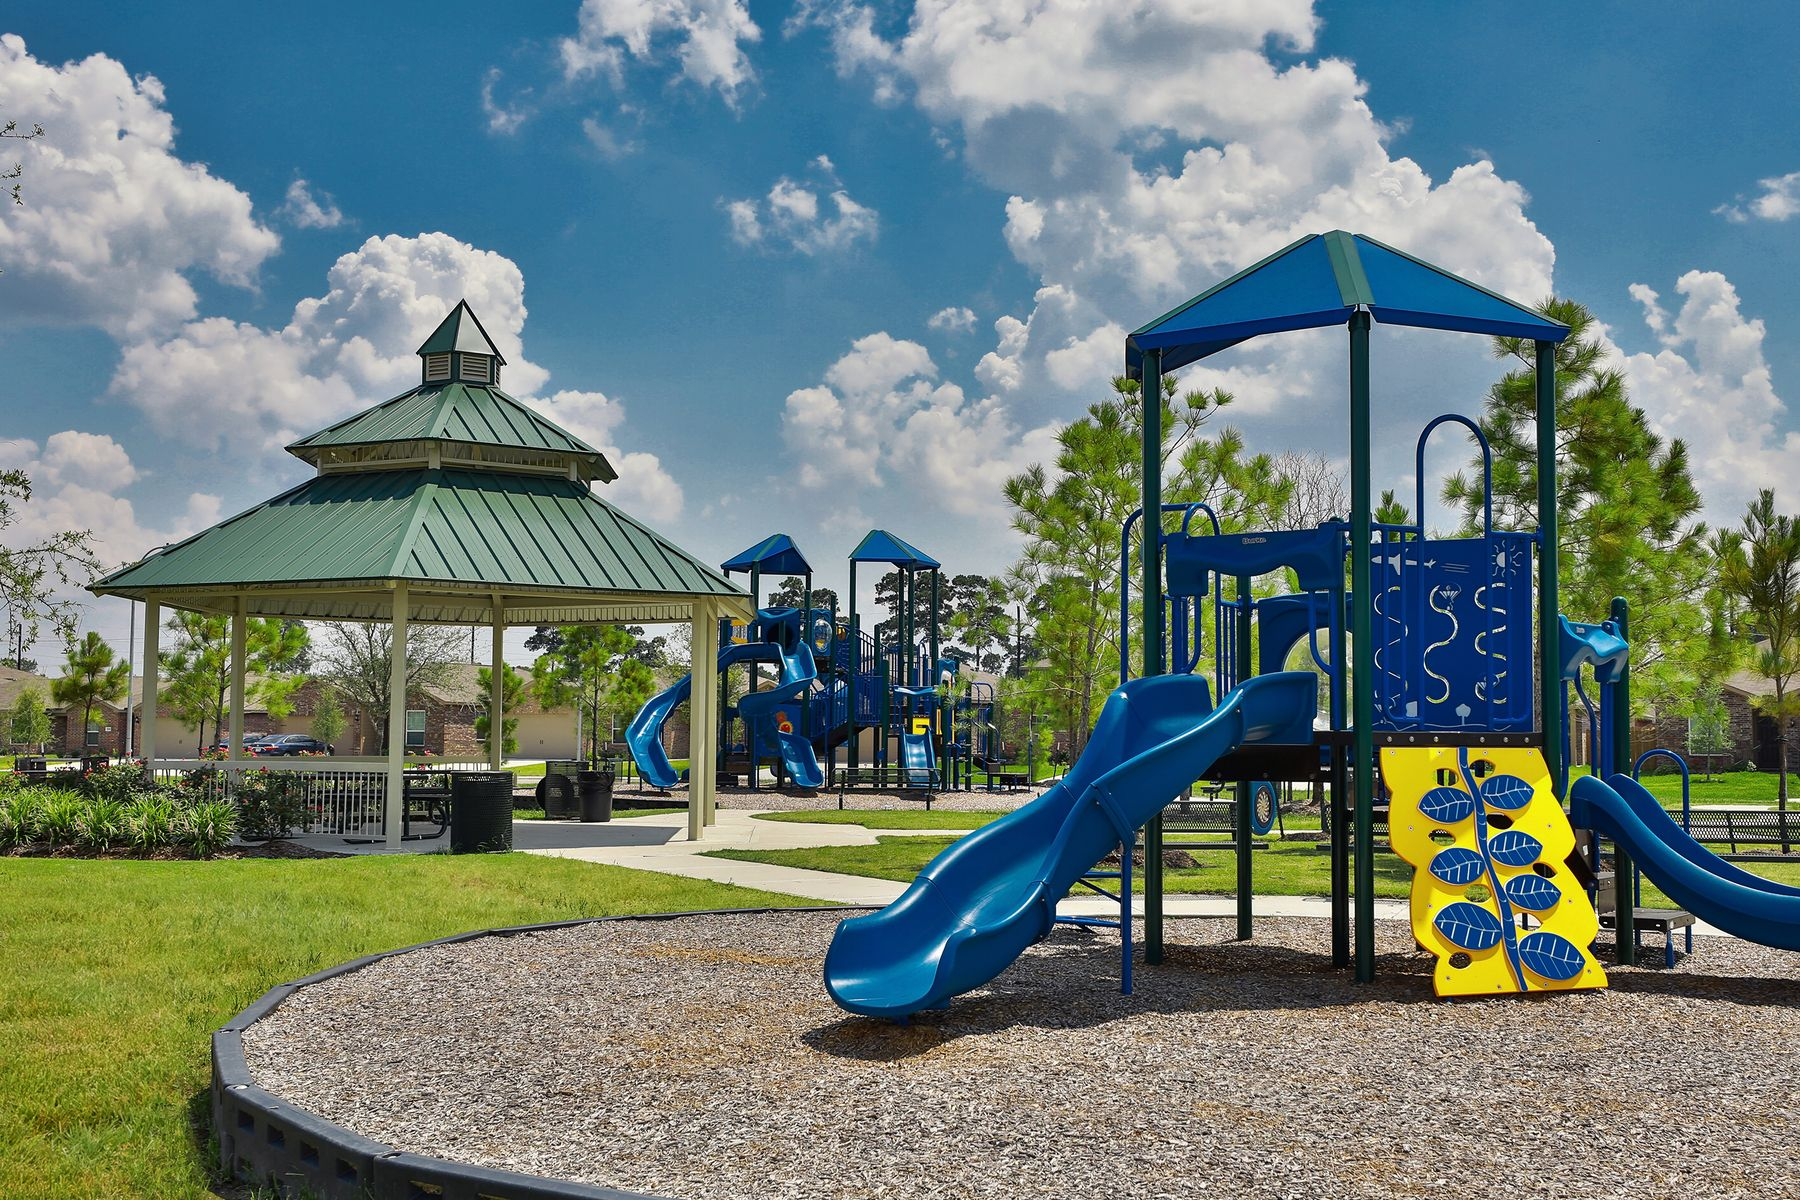 The Reserve at Park Lakes by LGI Homes:Multiple play structures offer challenging fun for children of all ages.